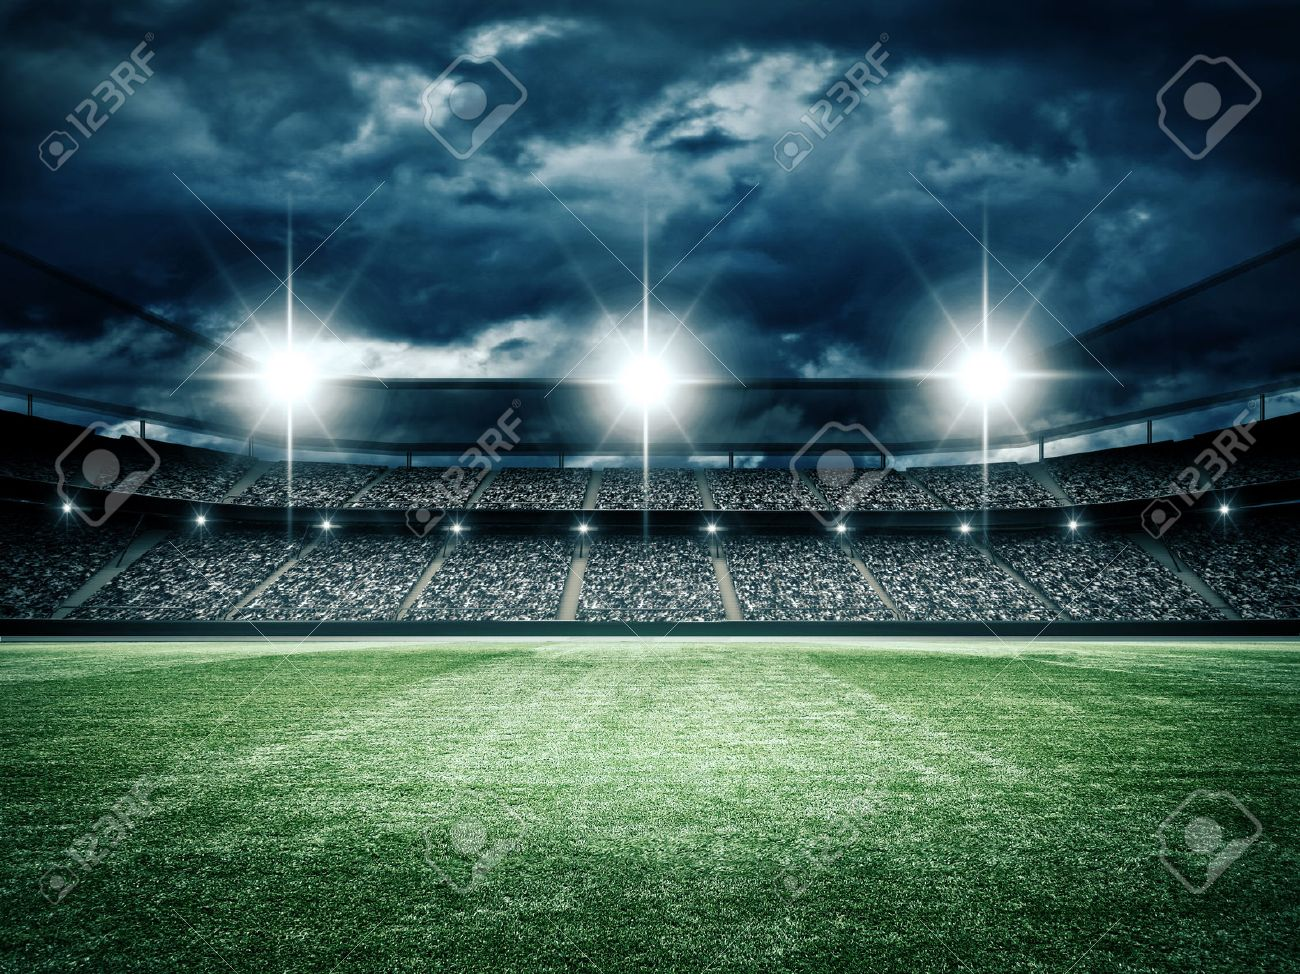 The imaginary soccer stadium is modeled and rendered. - 54318773